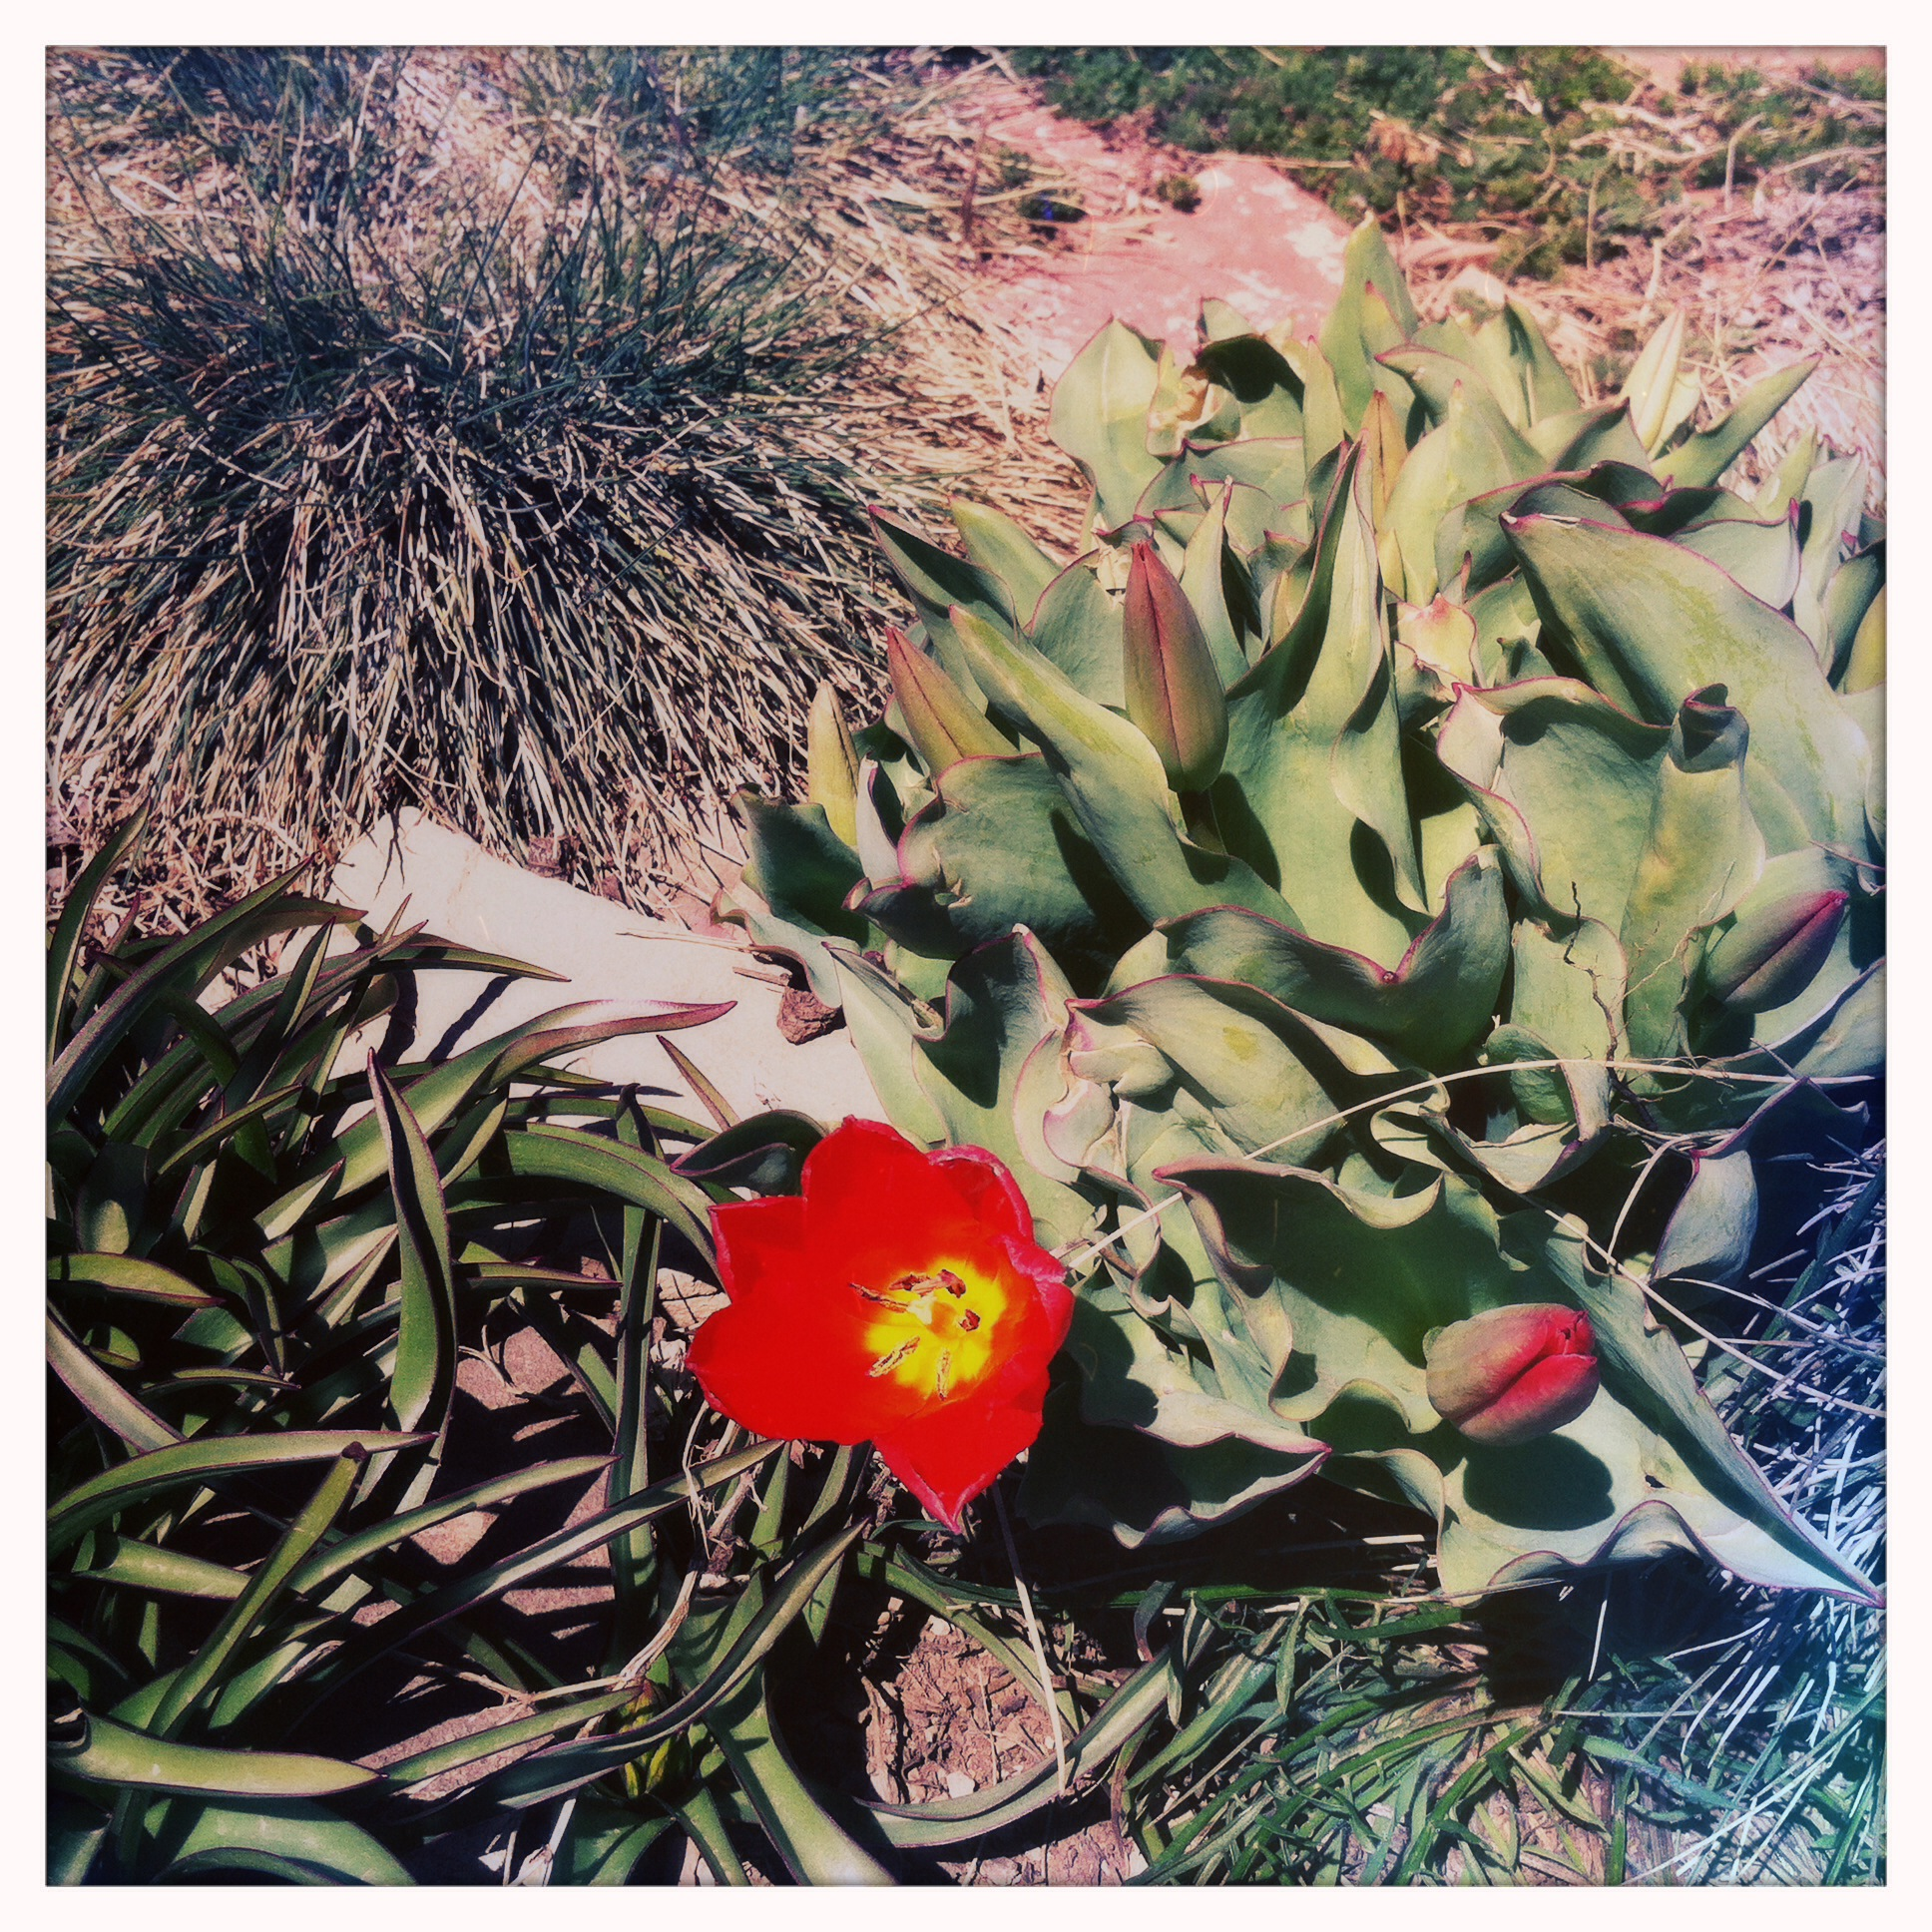 Tall coral tulips have been cross-pollinated with the splashy red short ones to produce a unique hybrid.